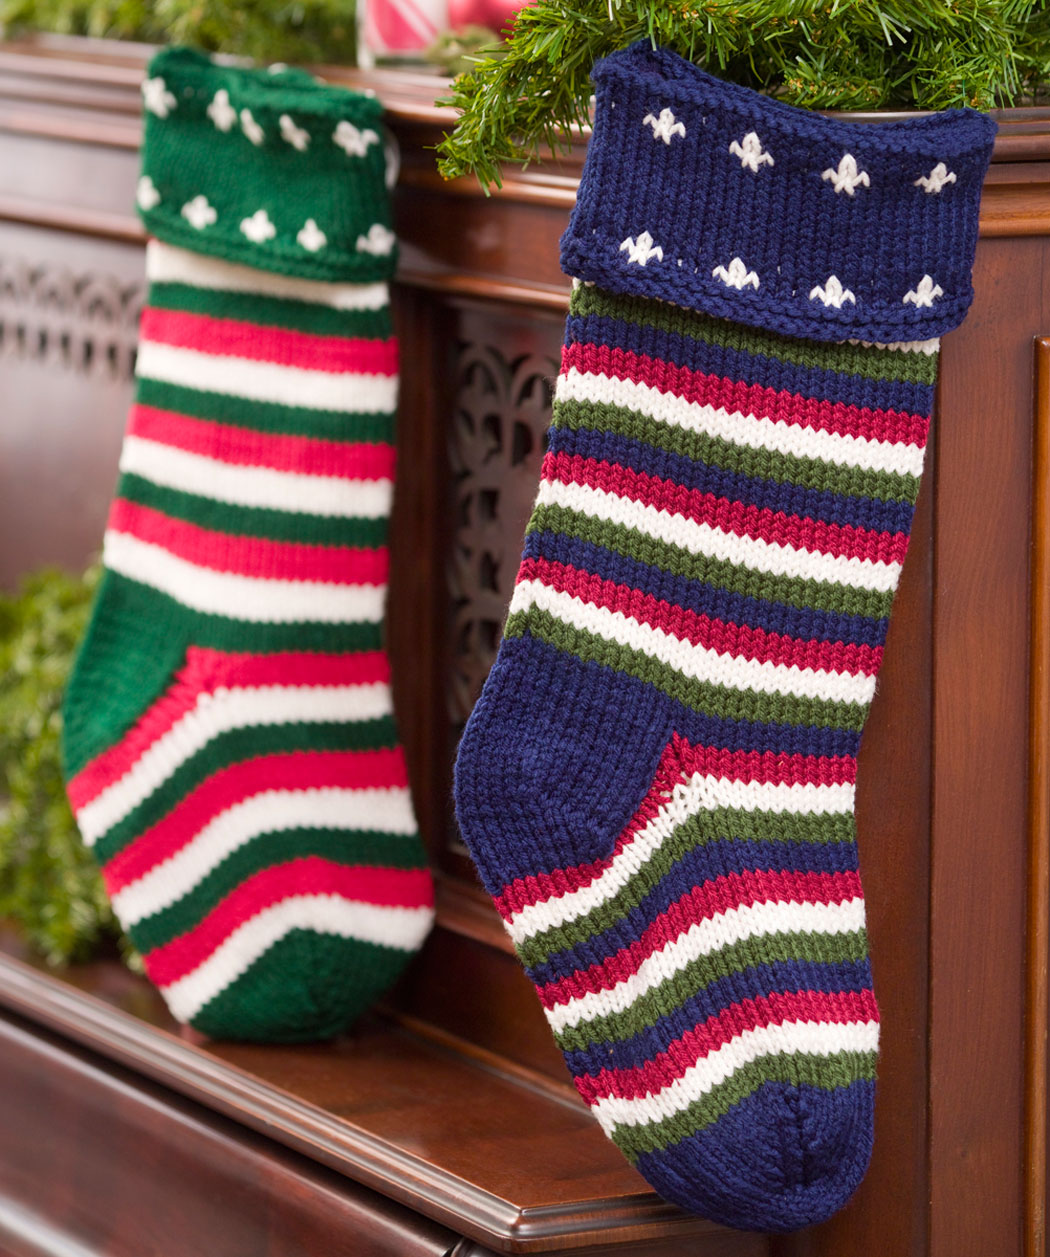 Engaging knit christmas stockings with multicolorful christmas stocking and fireplace at chistmas day interior design